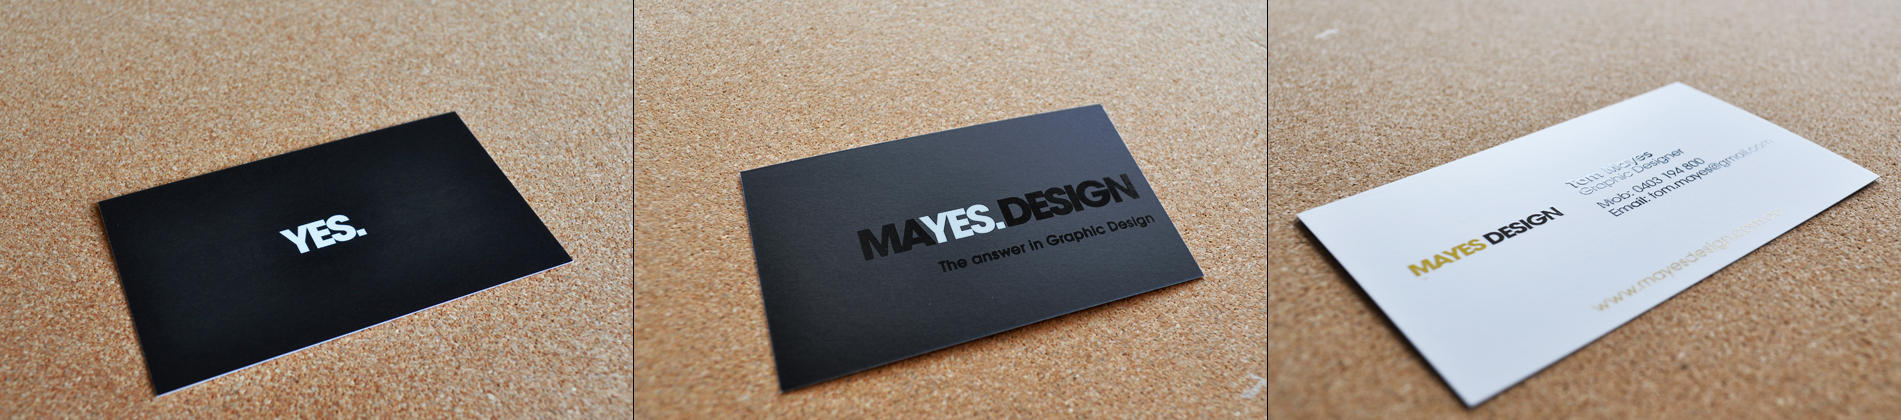 Business Card Mayes Design